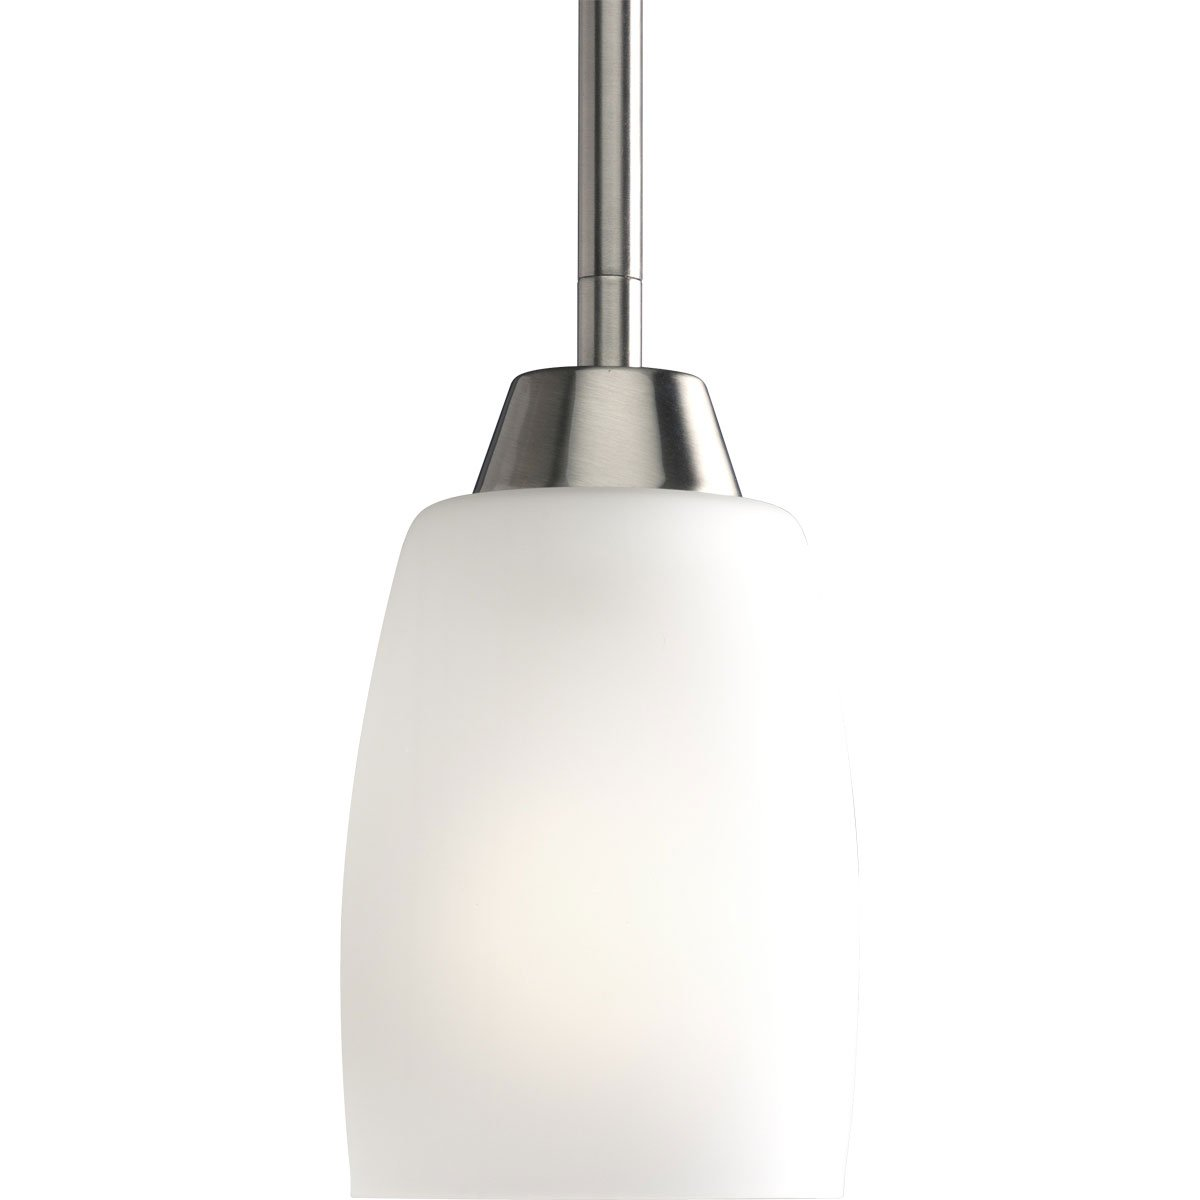 Progress Lighting P5108-09EBWB 1-Light Compact Fluorescent Mini-Pendant with Elegant Arm and Clear Etched Glass Using A GU24 Lamp, Brushed Nickel